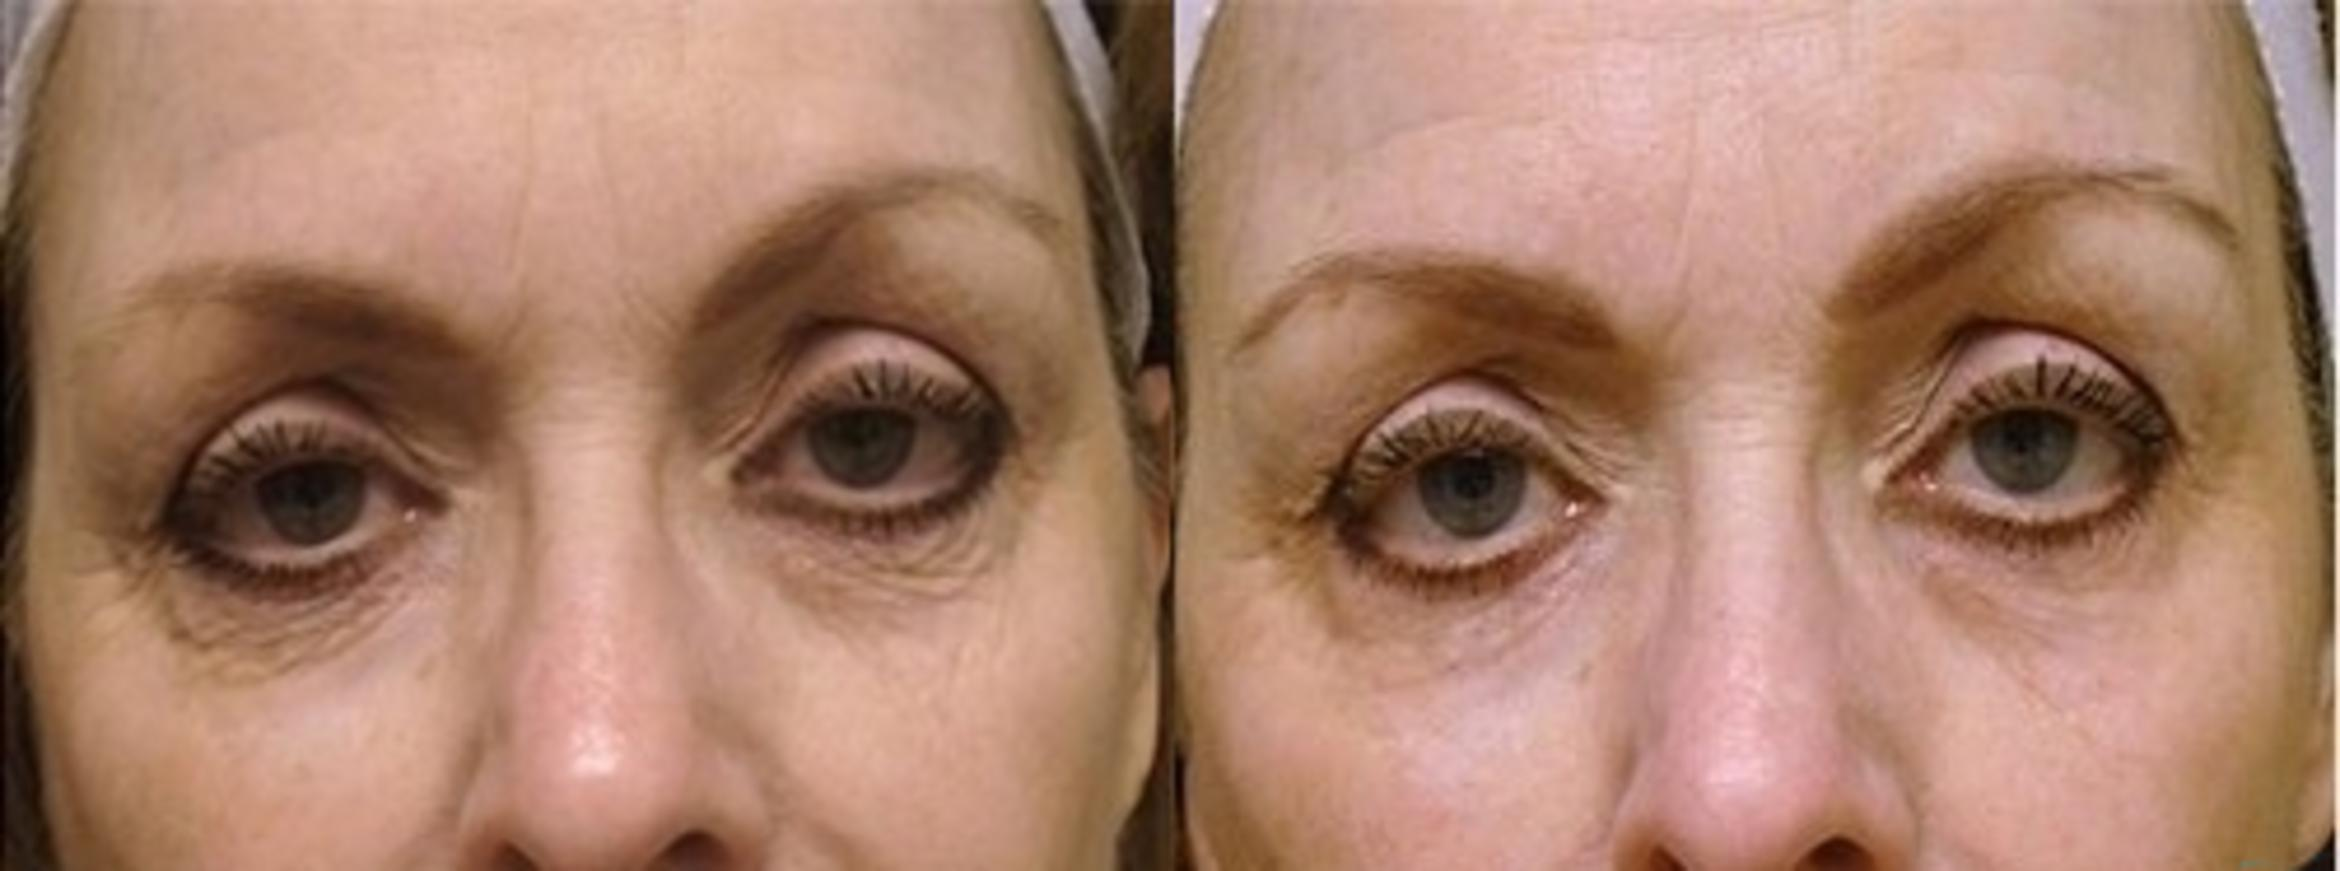 Microdermabrasion Case 6 Before & After Front | Livermore, CA | Silhouette Med Spa & Weight Management